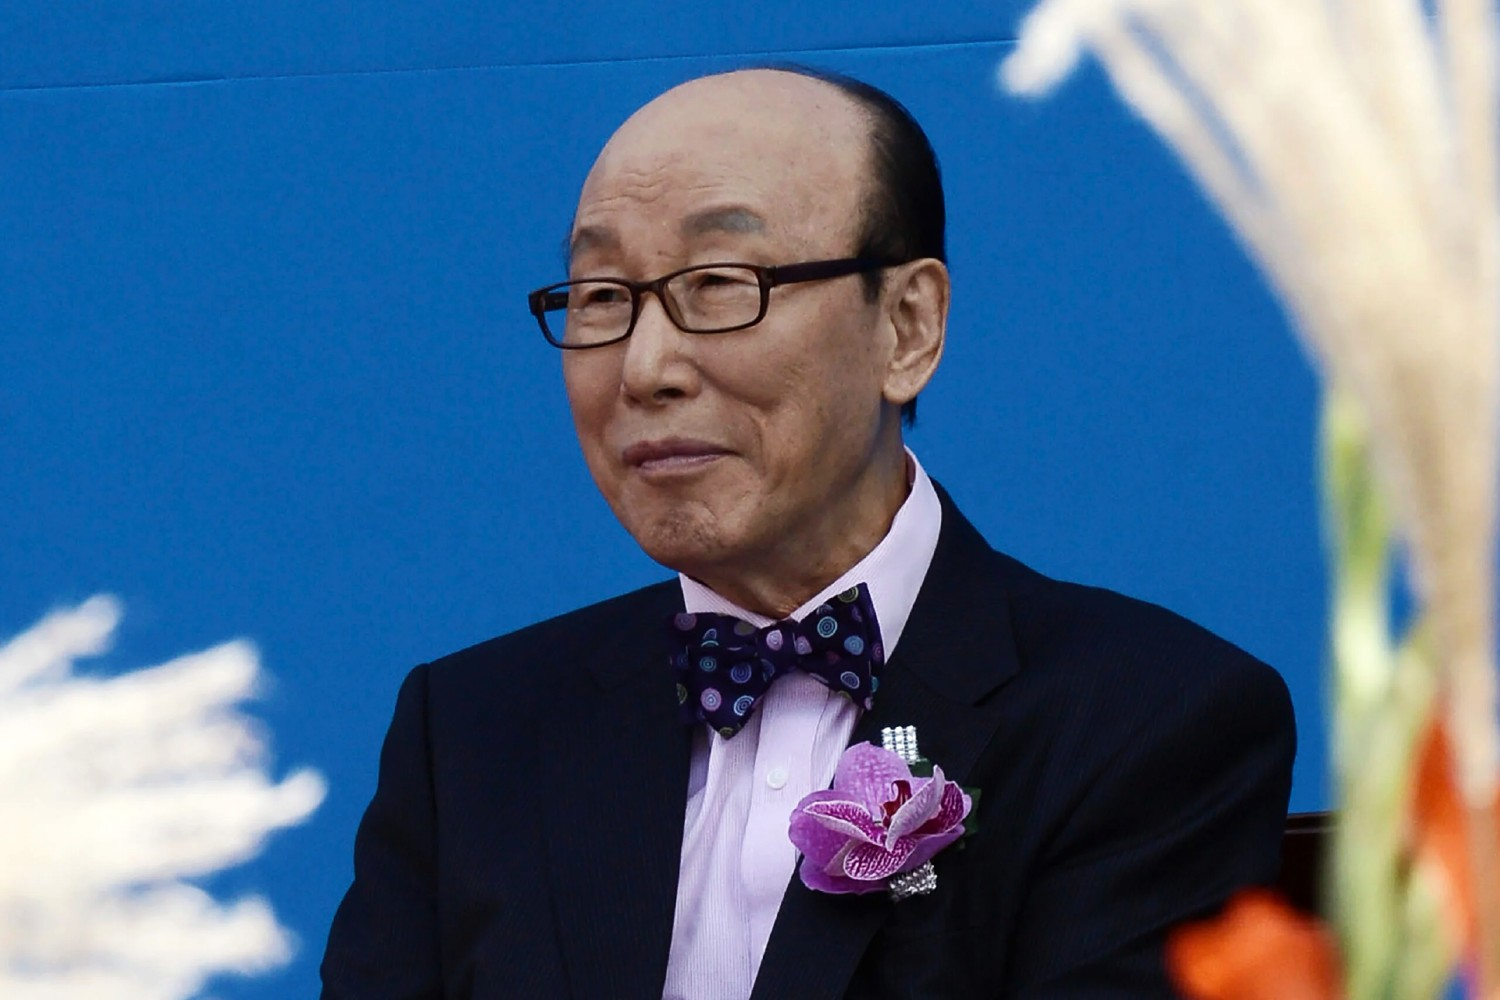 Founder Of The World's Largest Church, David Yonggi Cho Has Died!